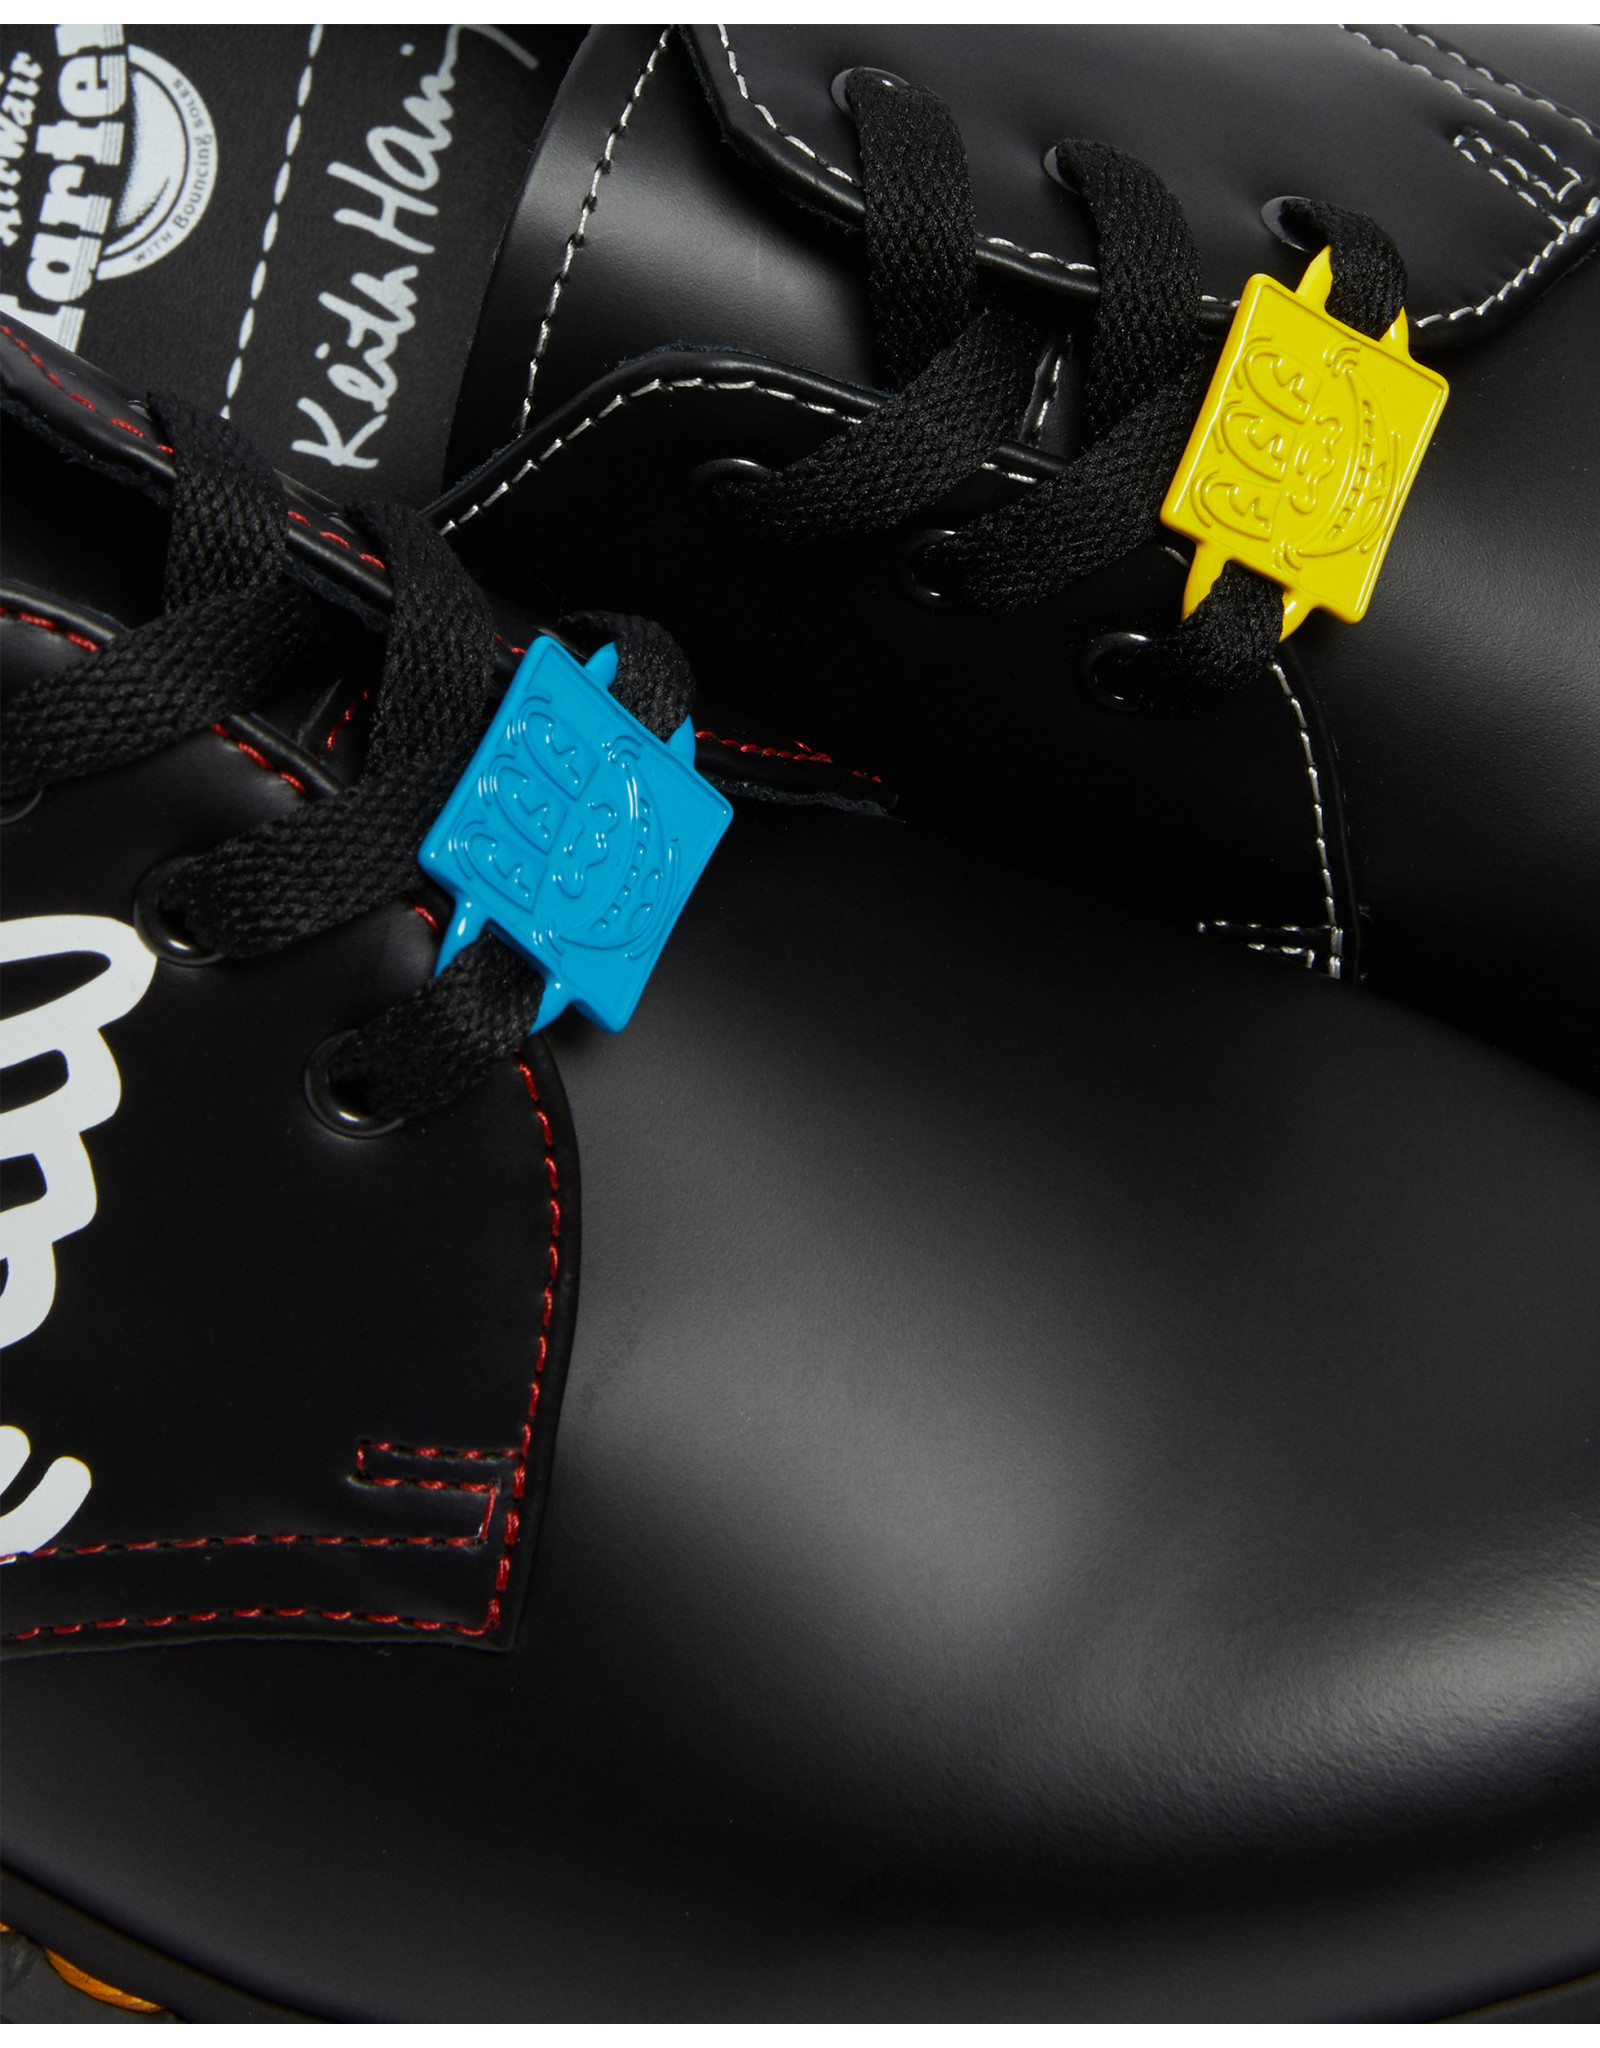 DR. MARTENS 1461 KEITH HARING FIG BLACK/RED/WHITE 301KHR-R26834001